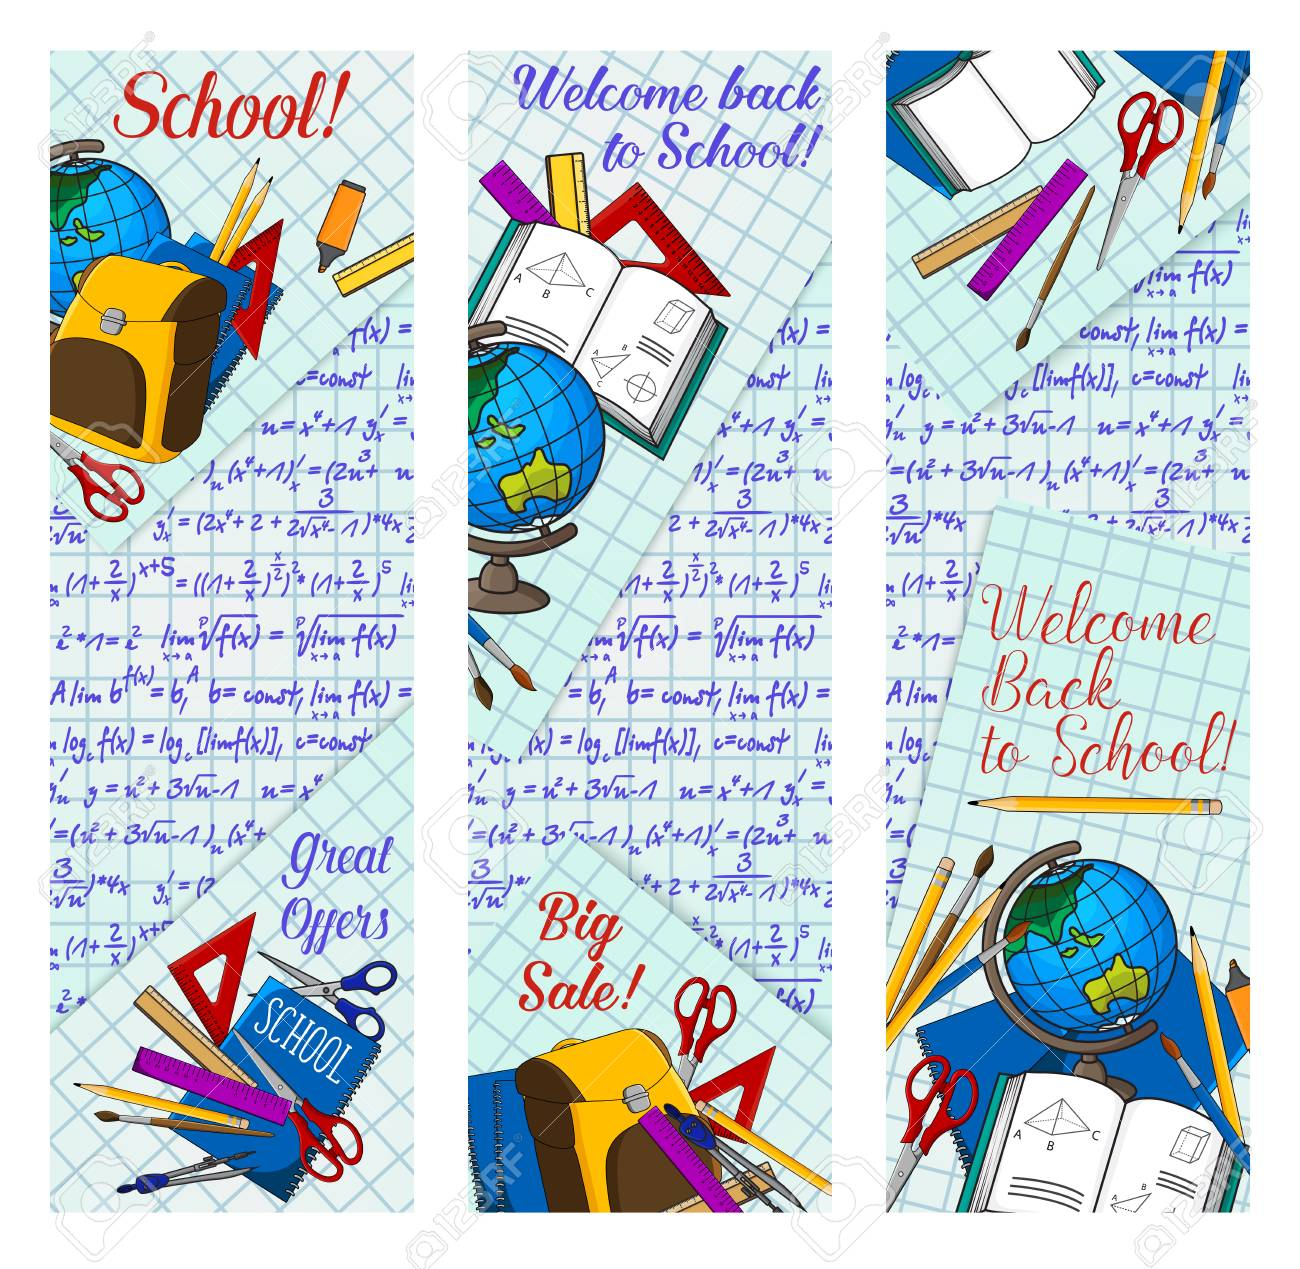 back to school supplies discount offer banner for new school year sale season template student